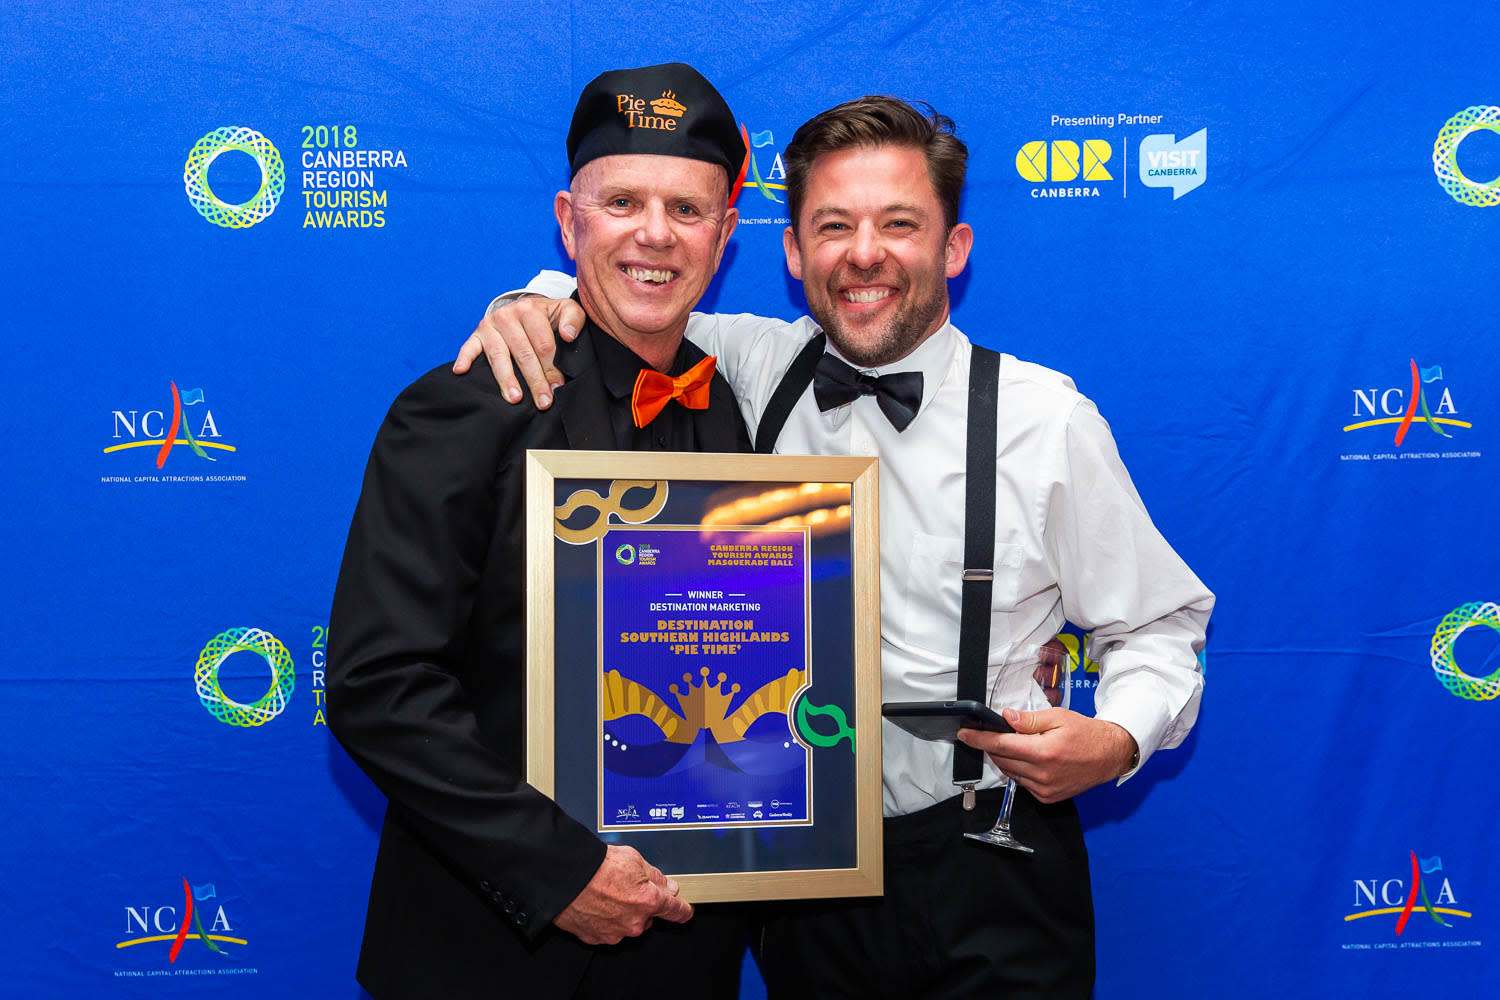 Tourism Awards judging: an interview with Todd Wright